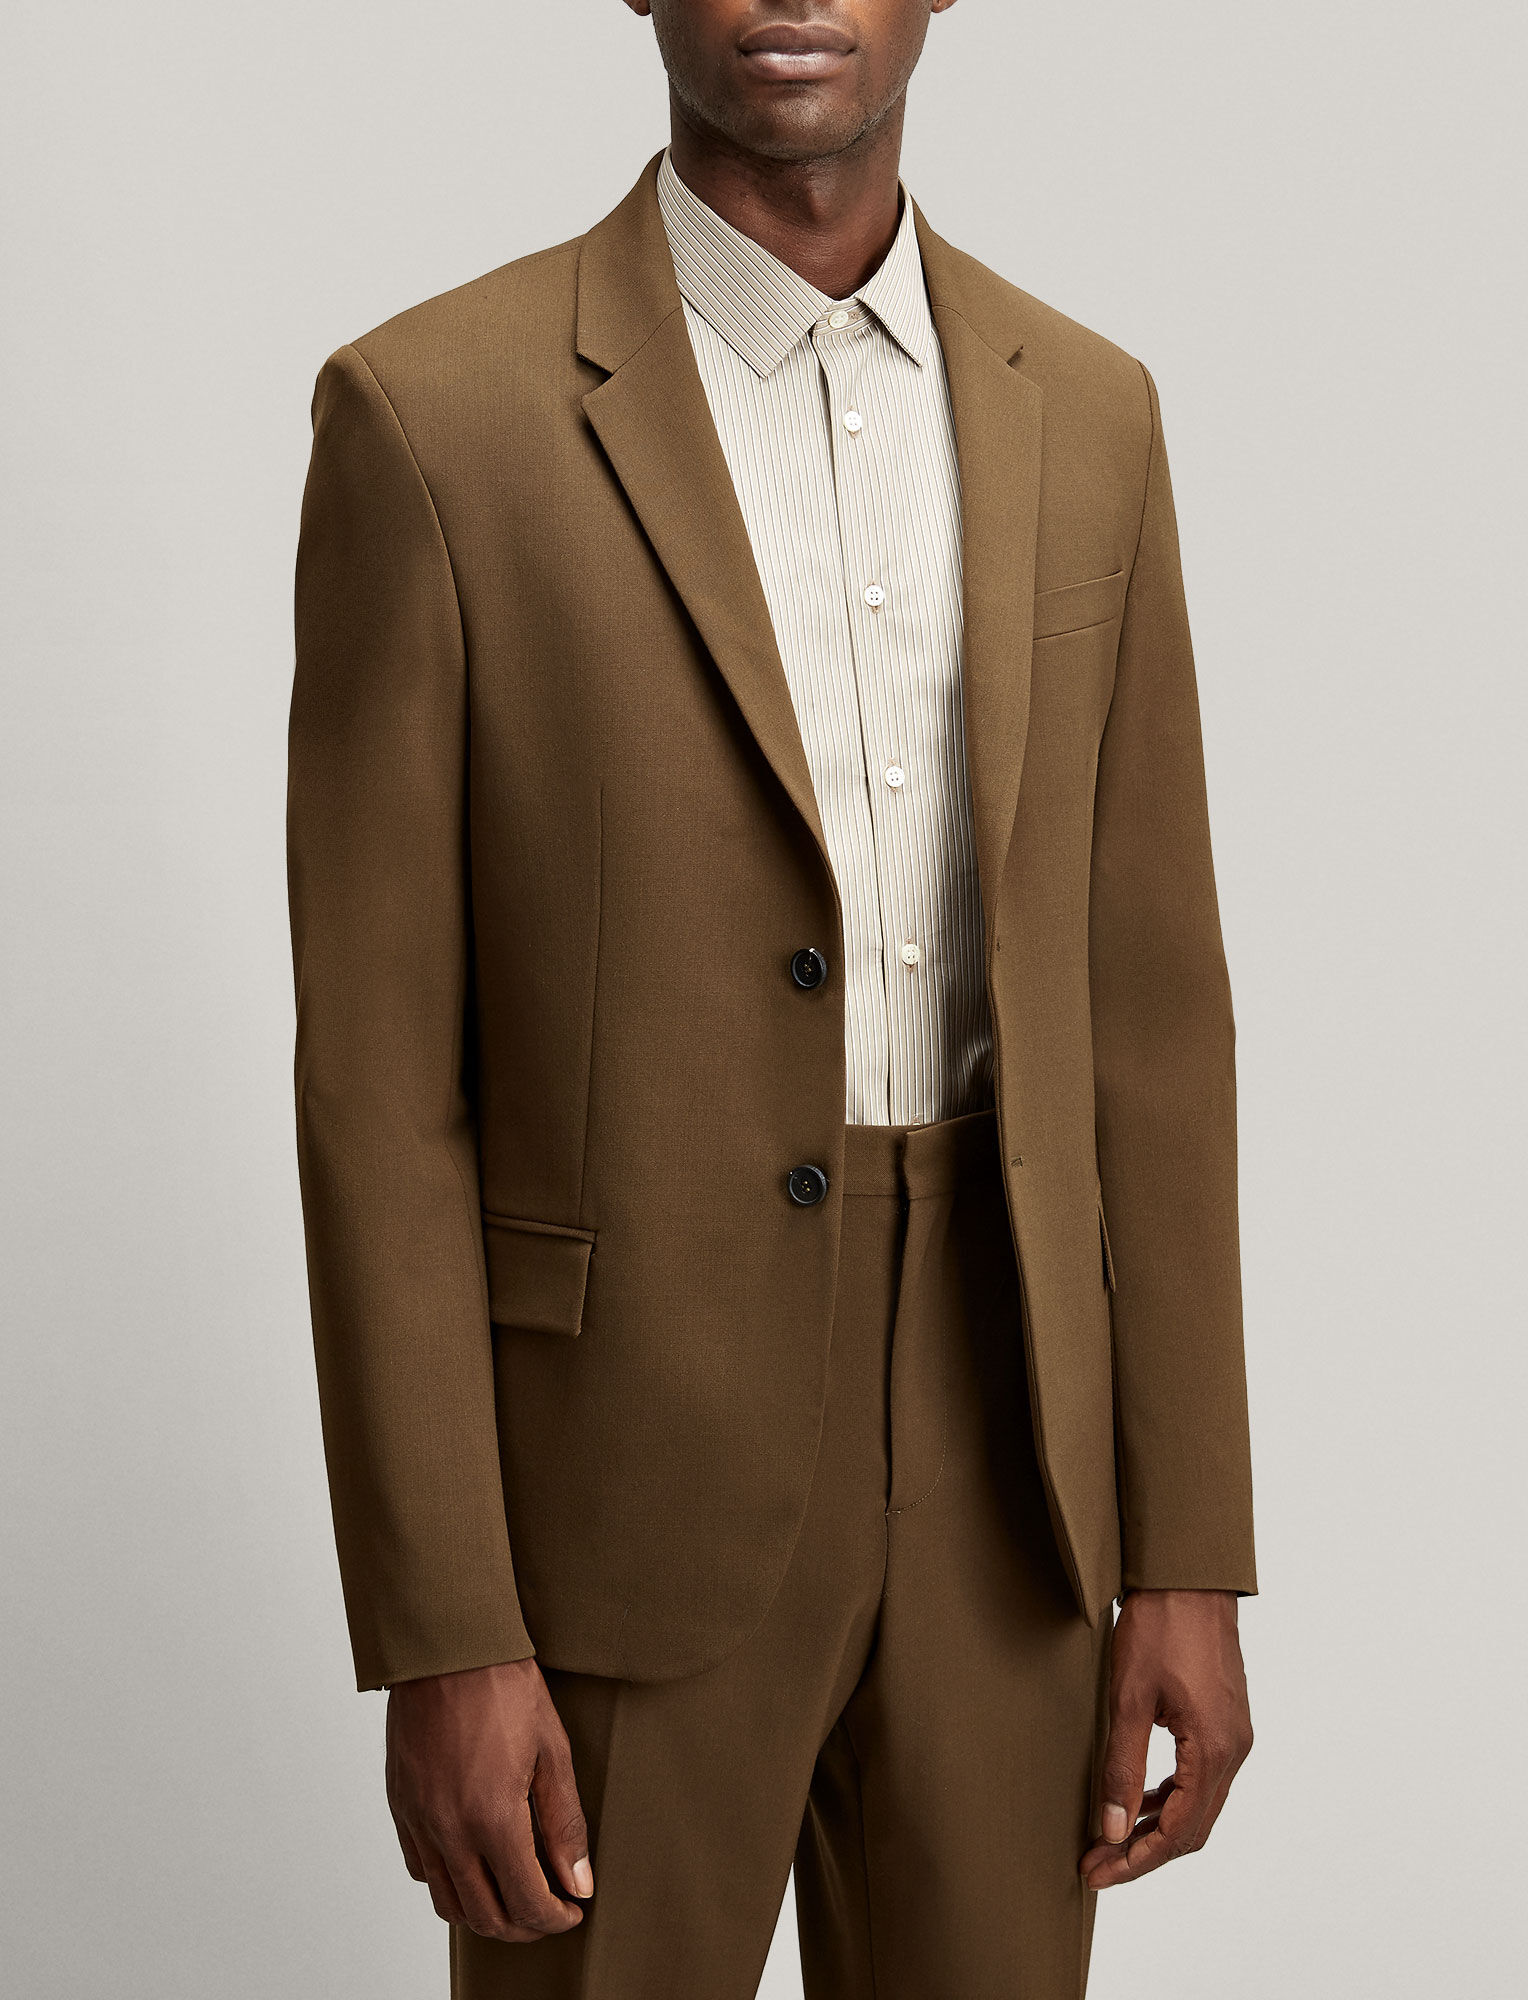 Joseph, Reading Techno Wool Stretch Jacket, in MILITARY